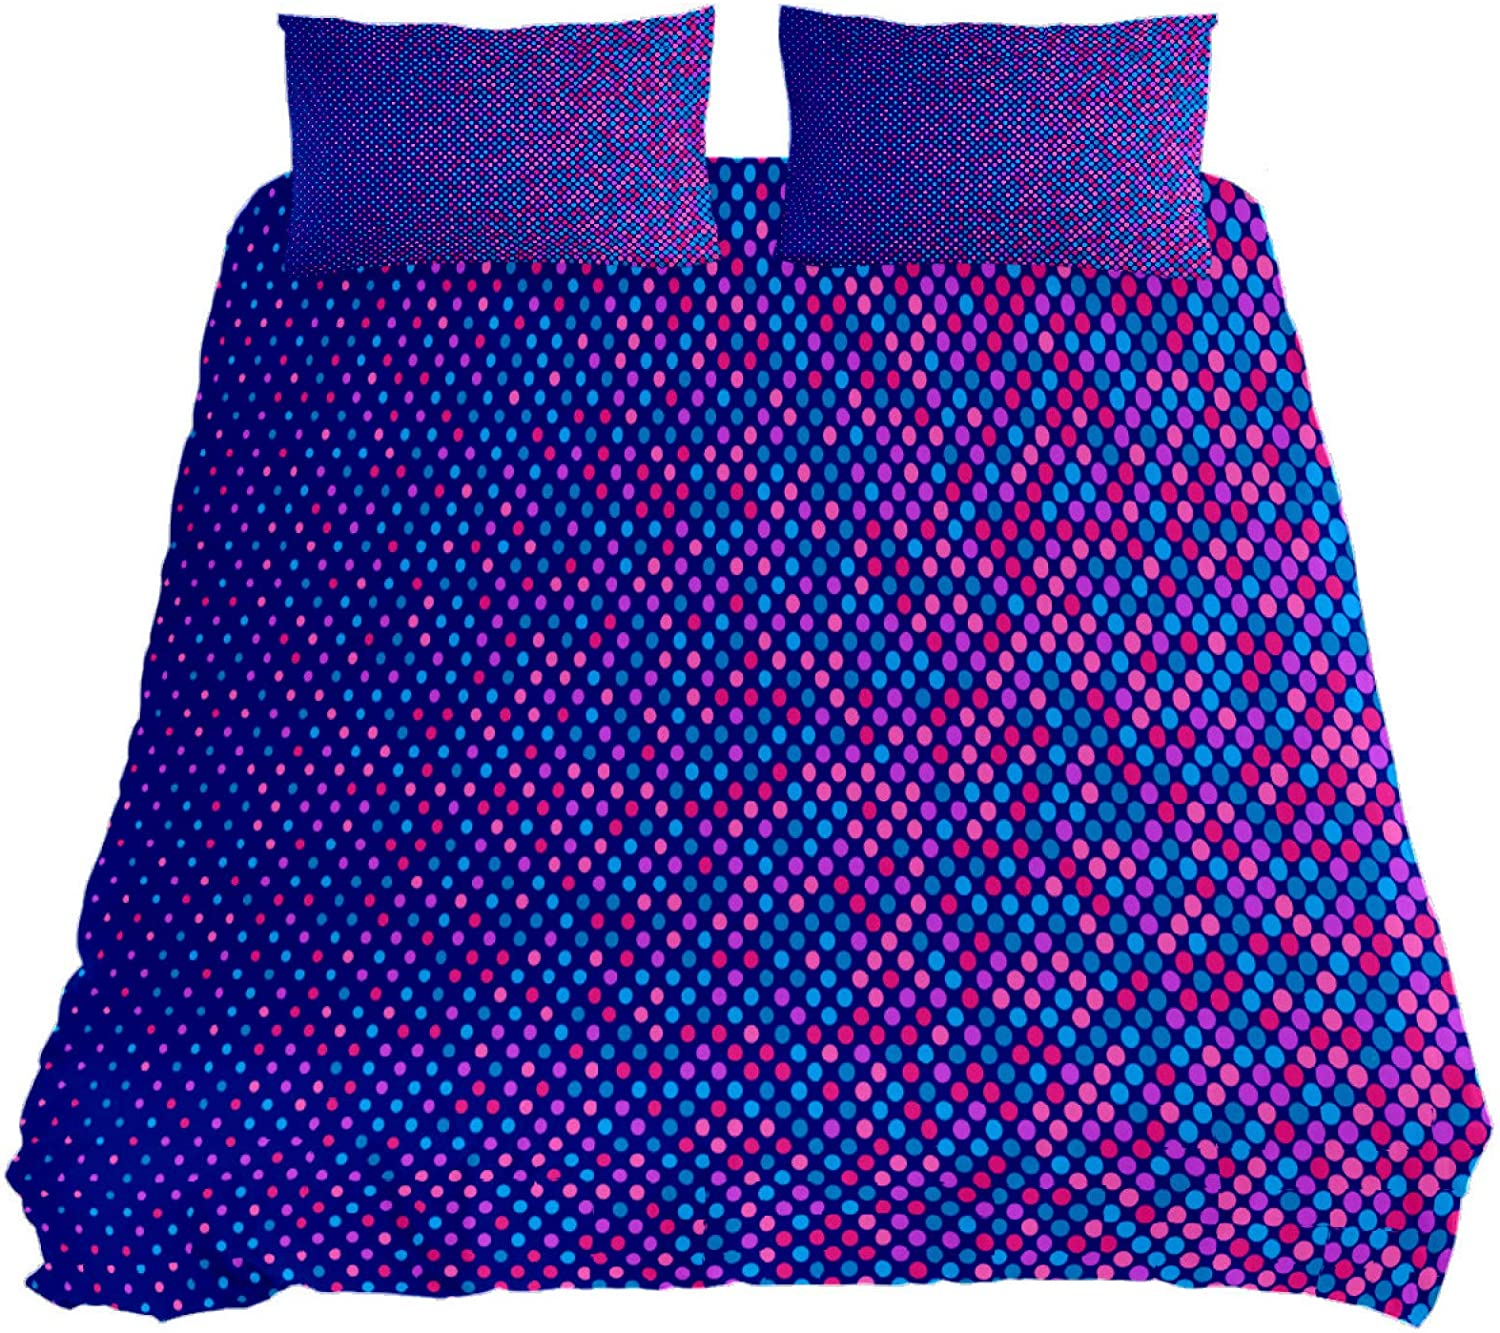 N\O Abstract Halftone Dot Star Bedding Sets Breathable Bedclothes 3 Pieces Bedding Duvet Cover Sets (1 Duvet Cover + 2 Pillowcases) Room Decor Ultra Soft Microfiber(NO Comforter Included)